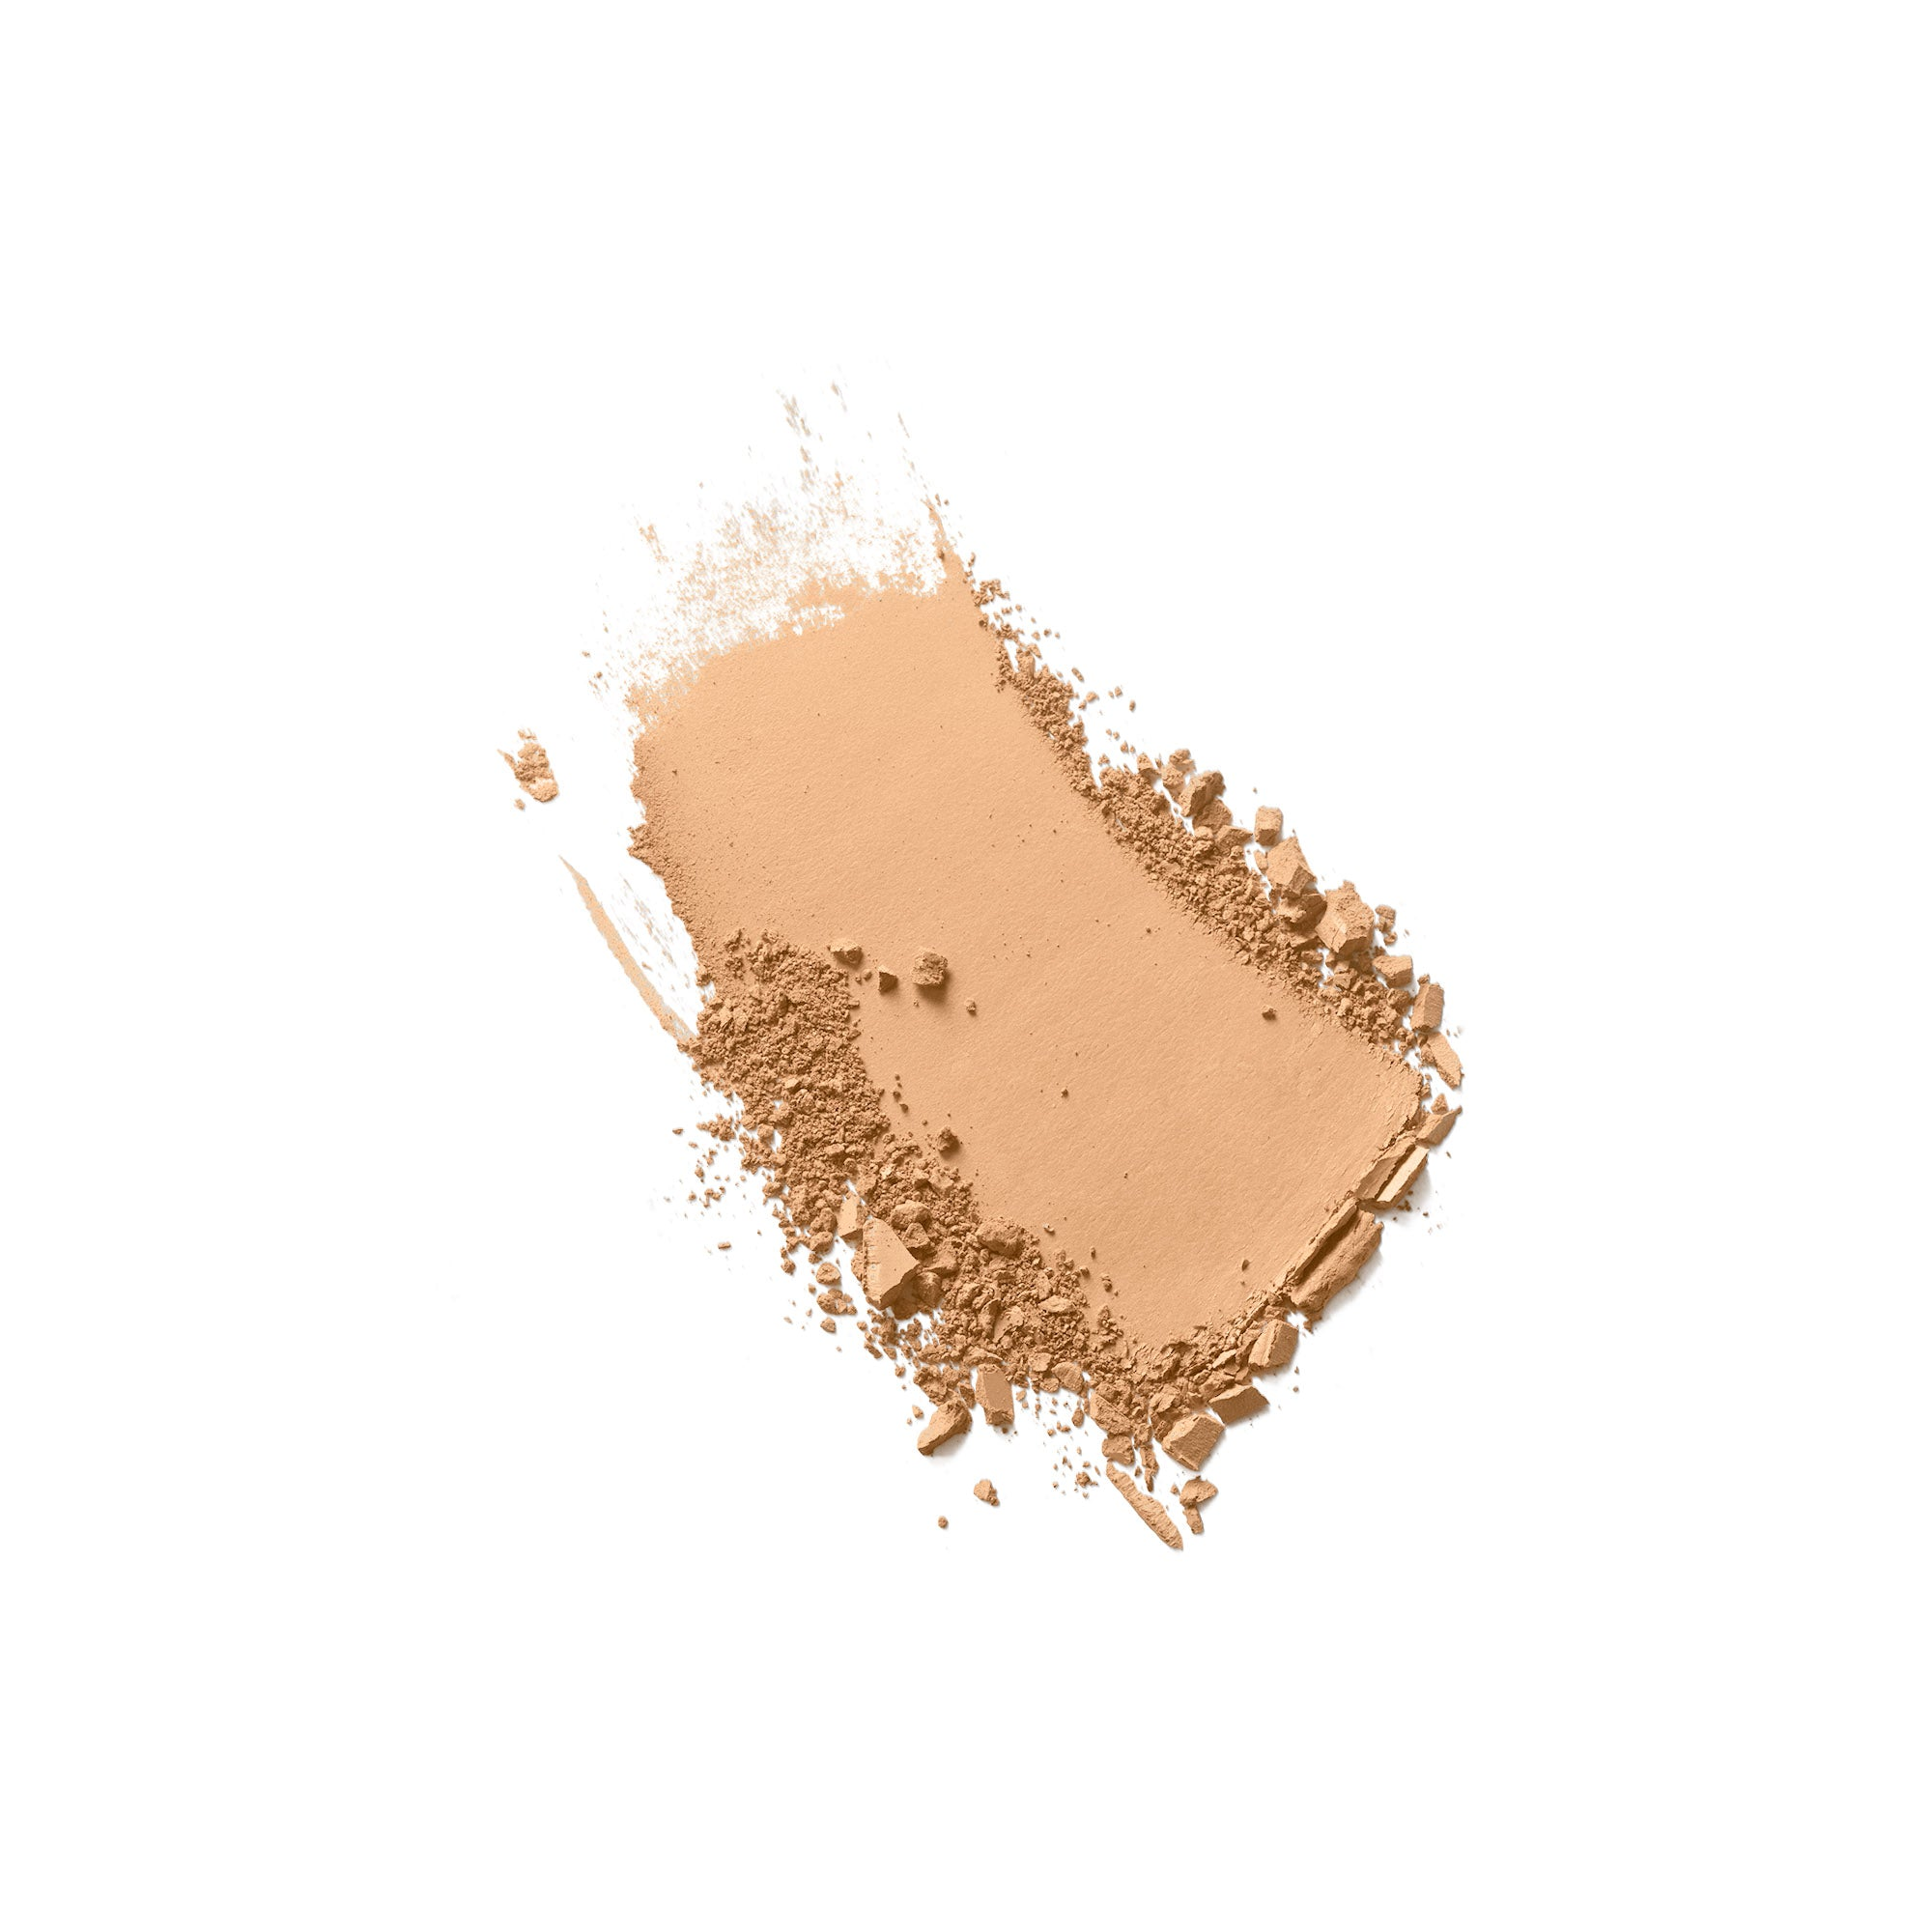 The Soft Moisture Powder Foundation SPF 30